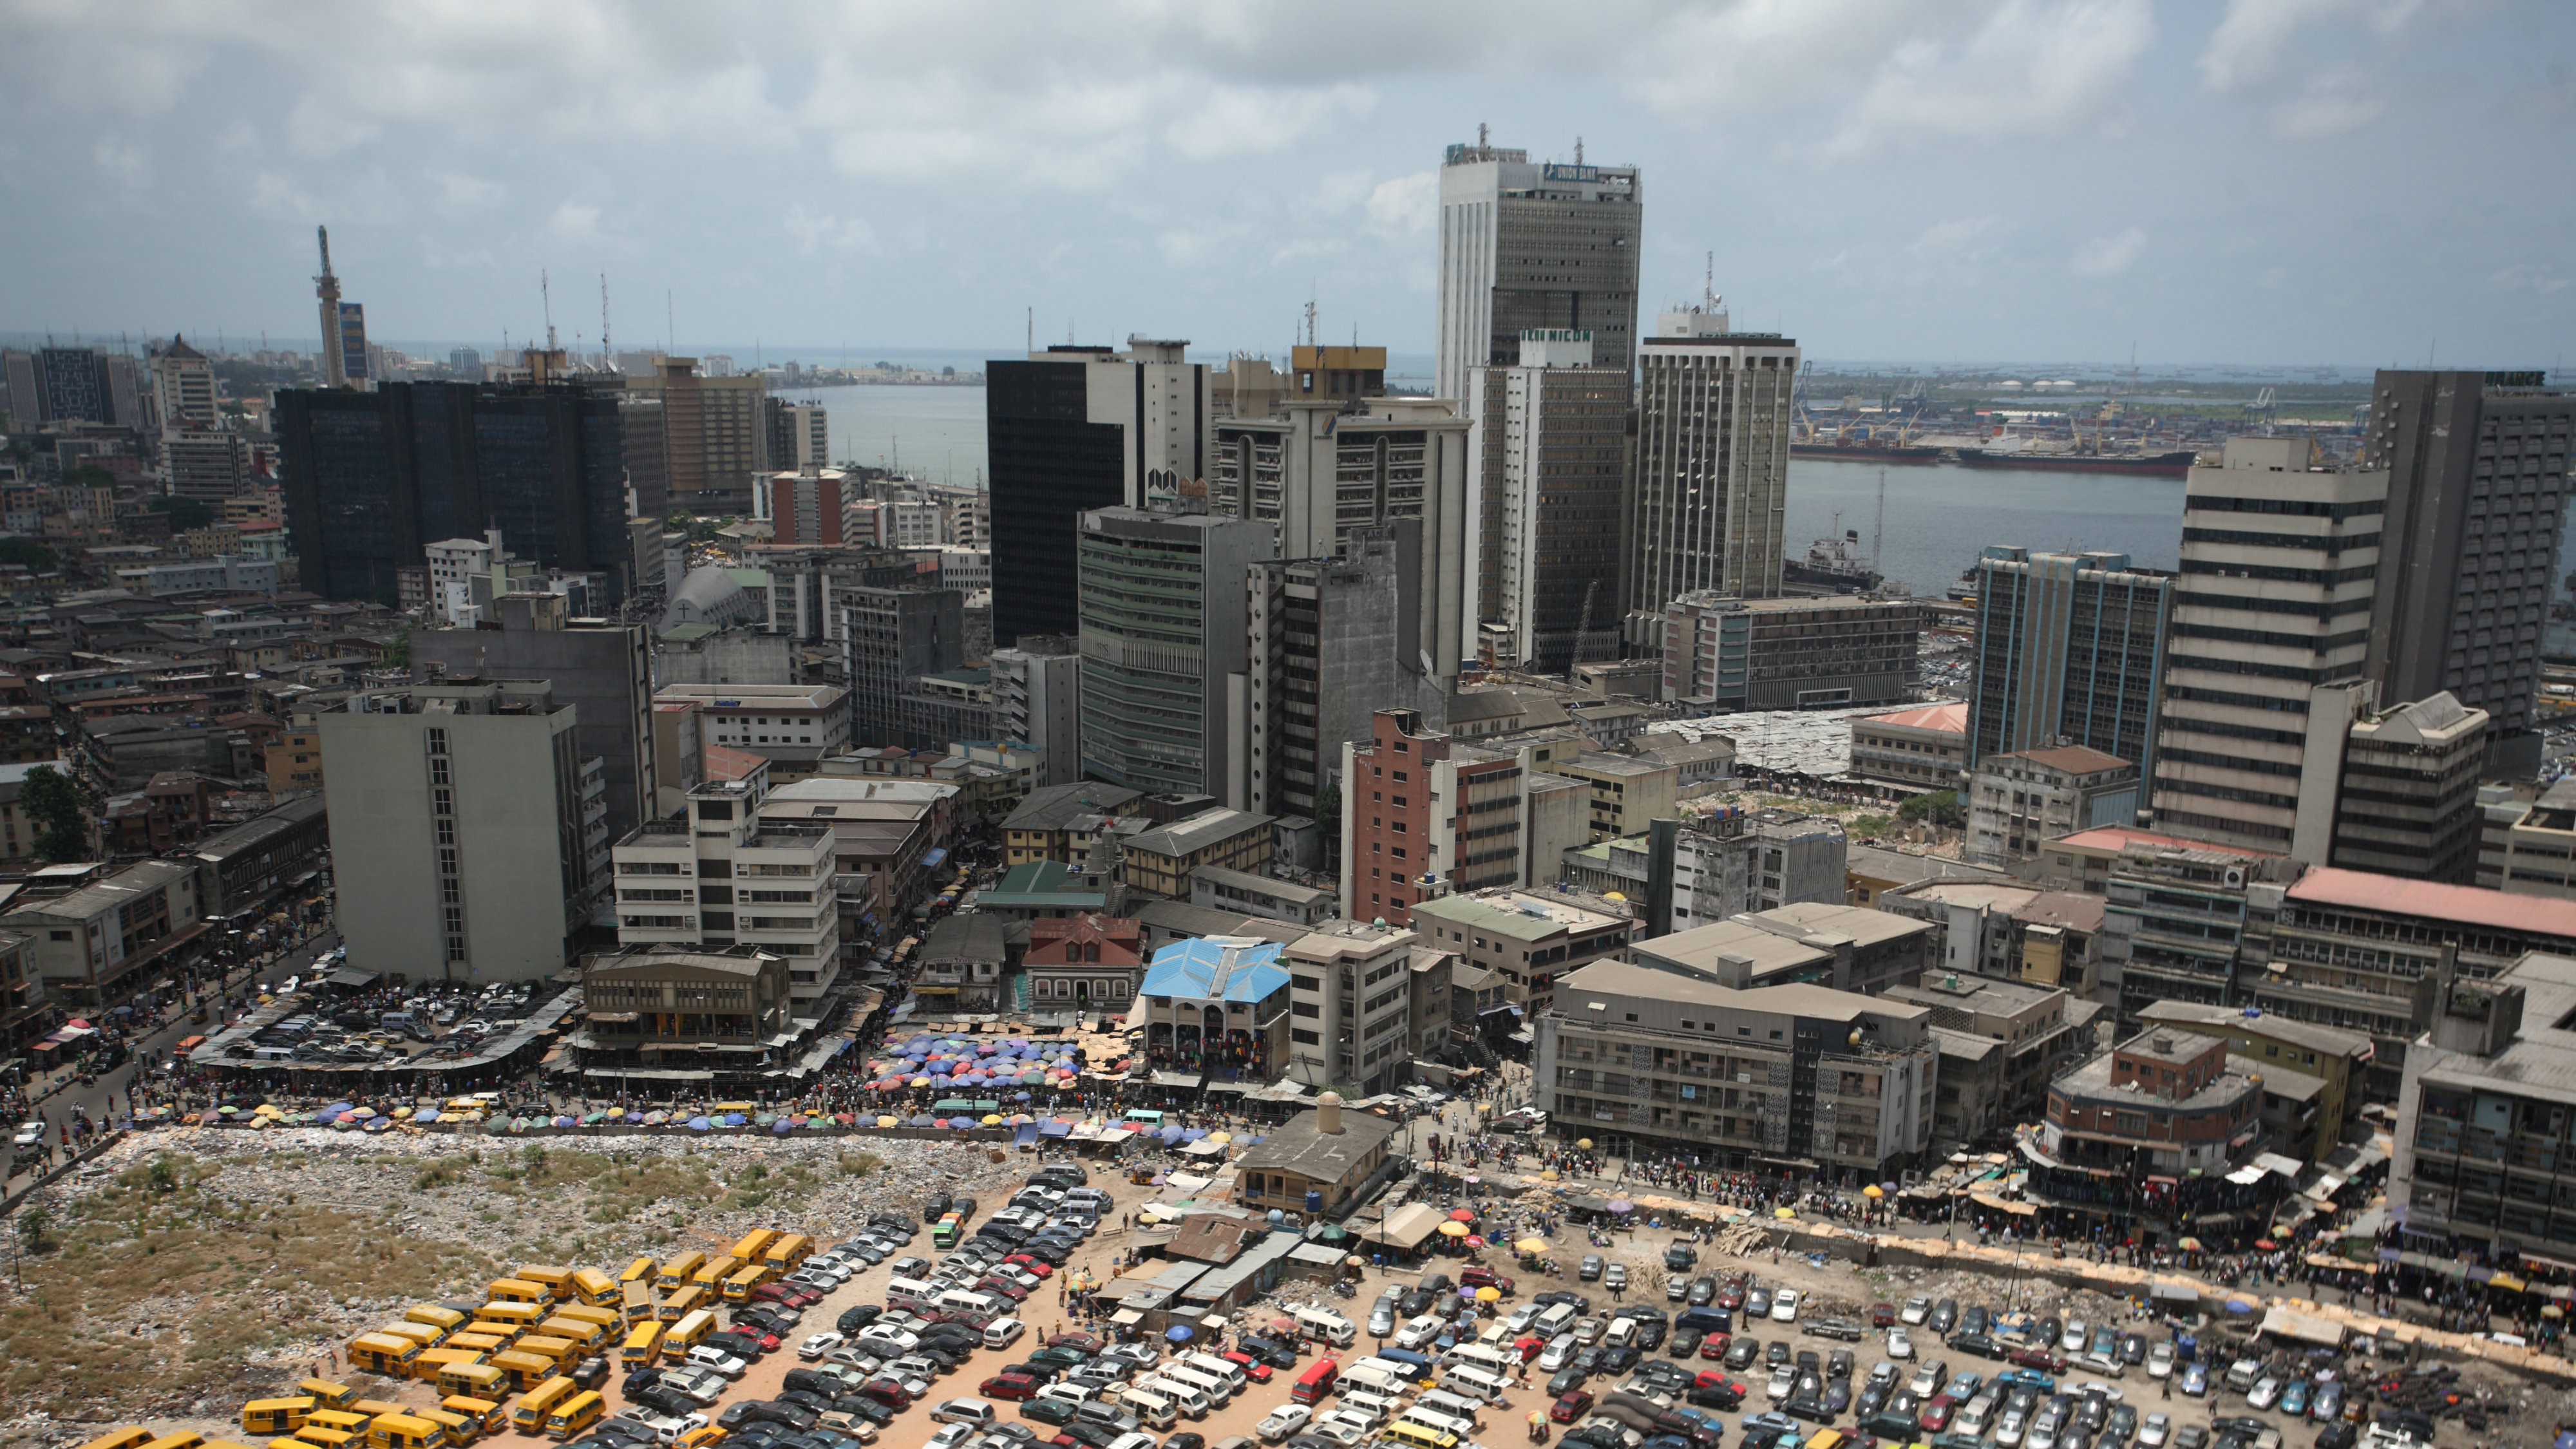 An aerial view shows the central business district in Nigeria's commercial capital of Lagos, April 7, 2009